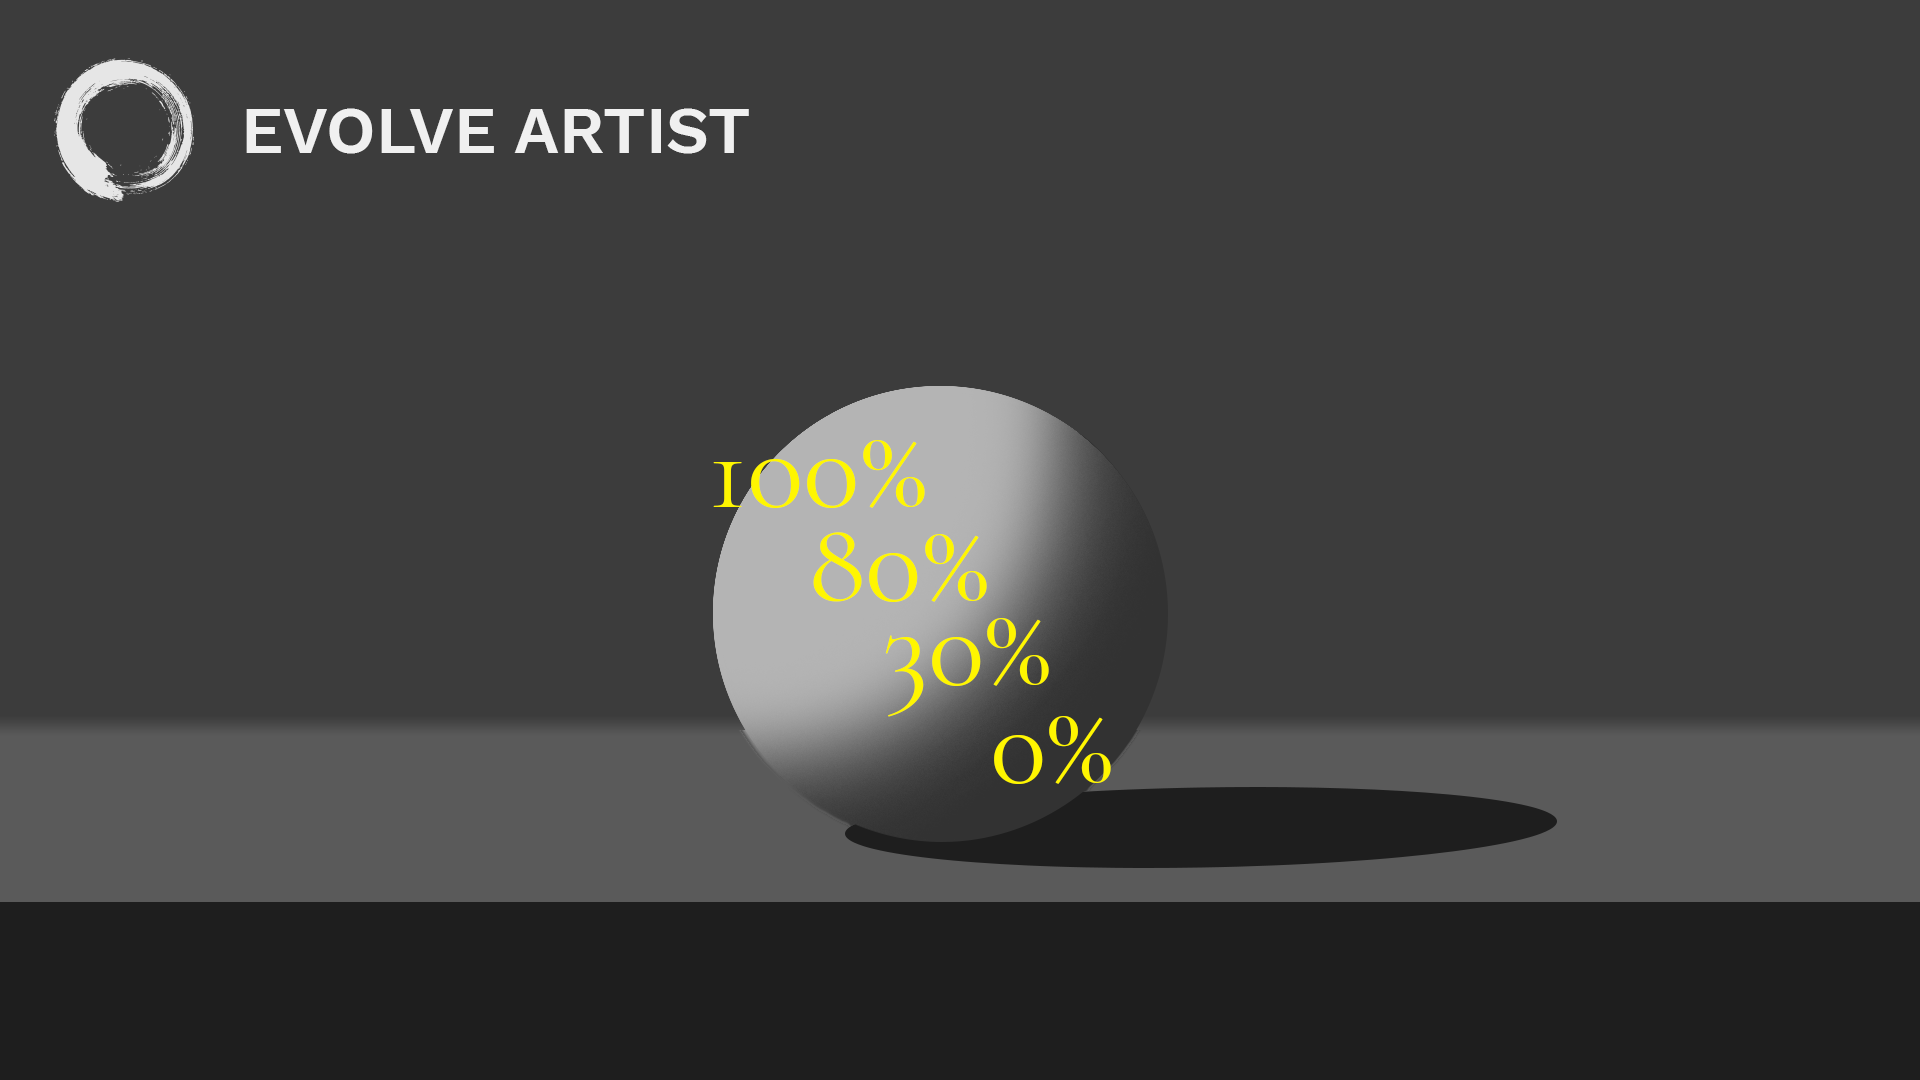 Form shadows on a sphere occur where the light recedes from 100% to 0%